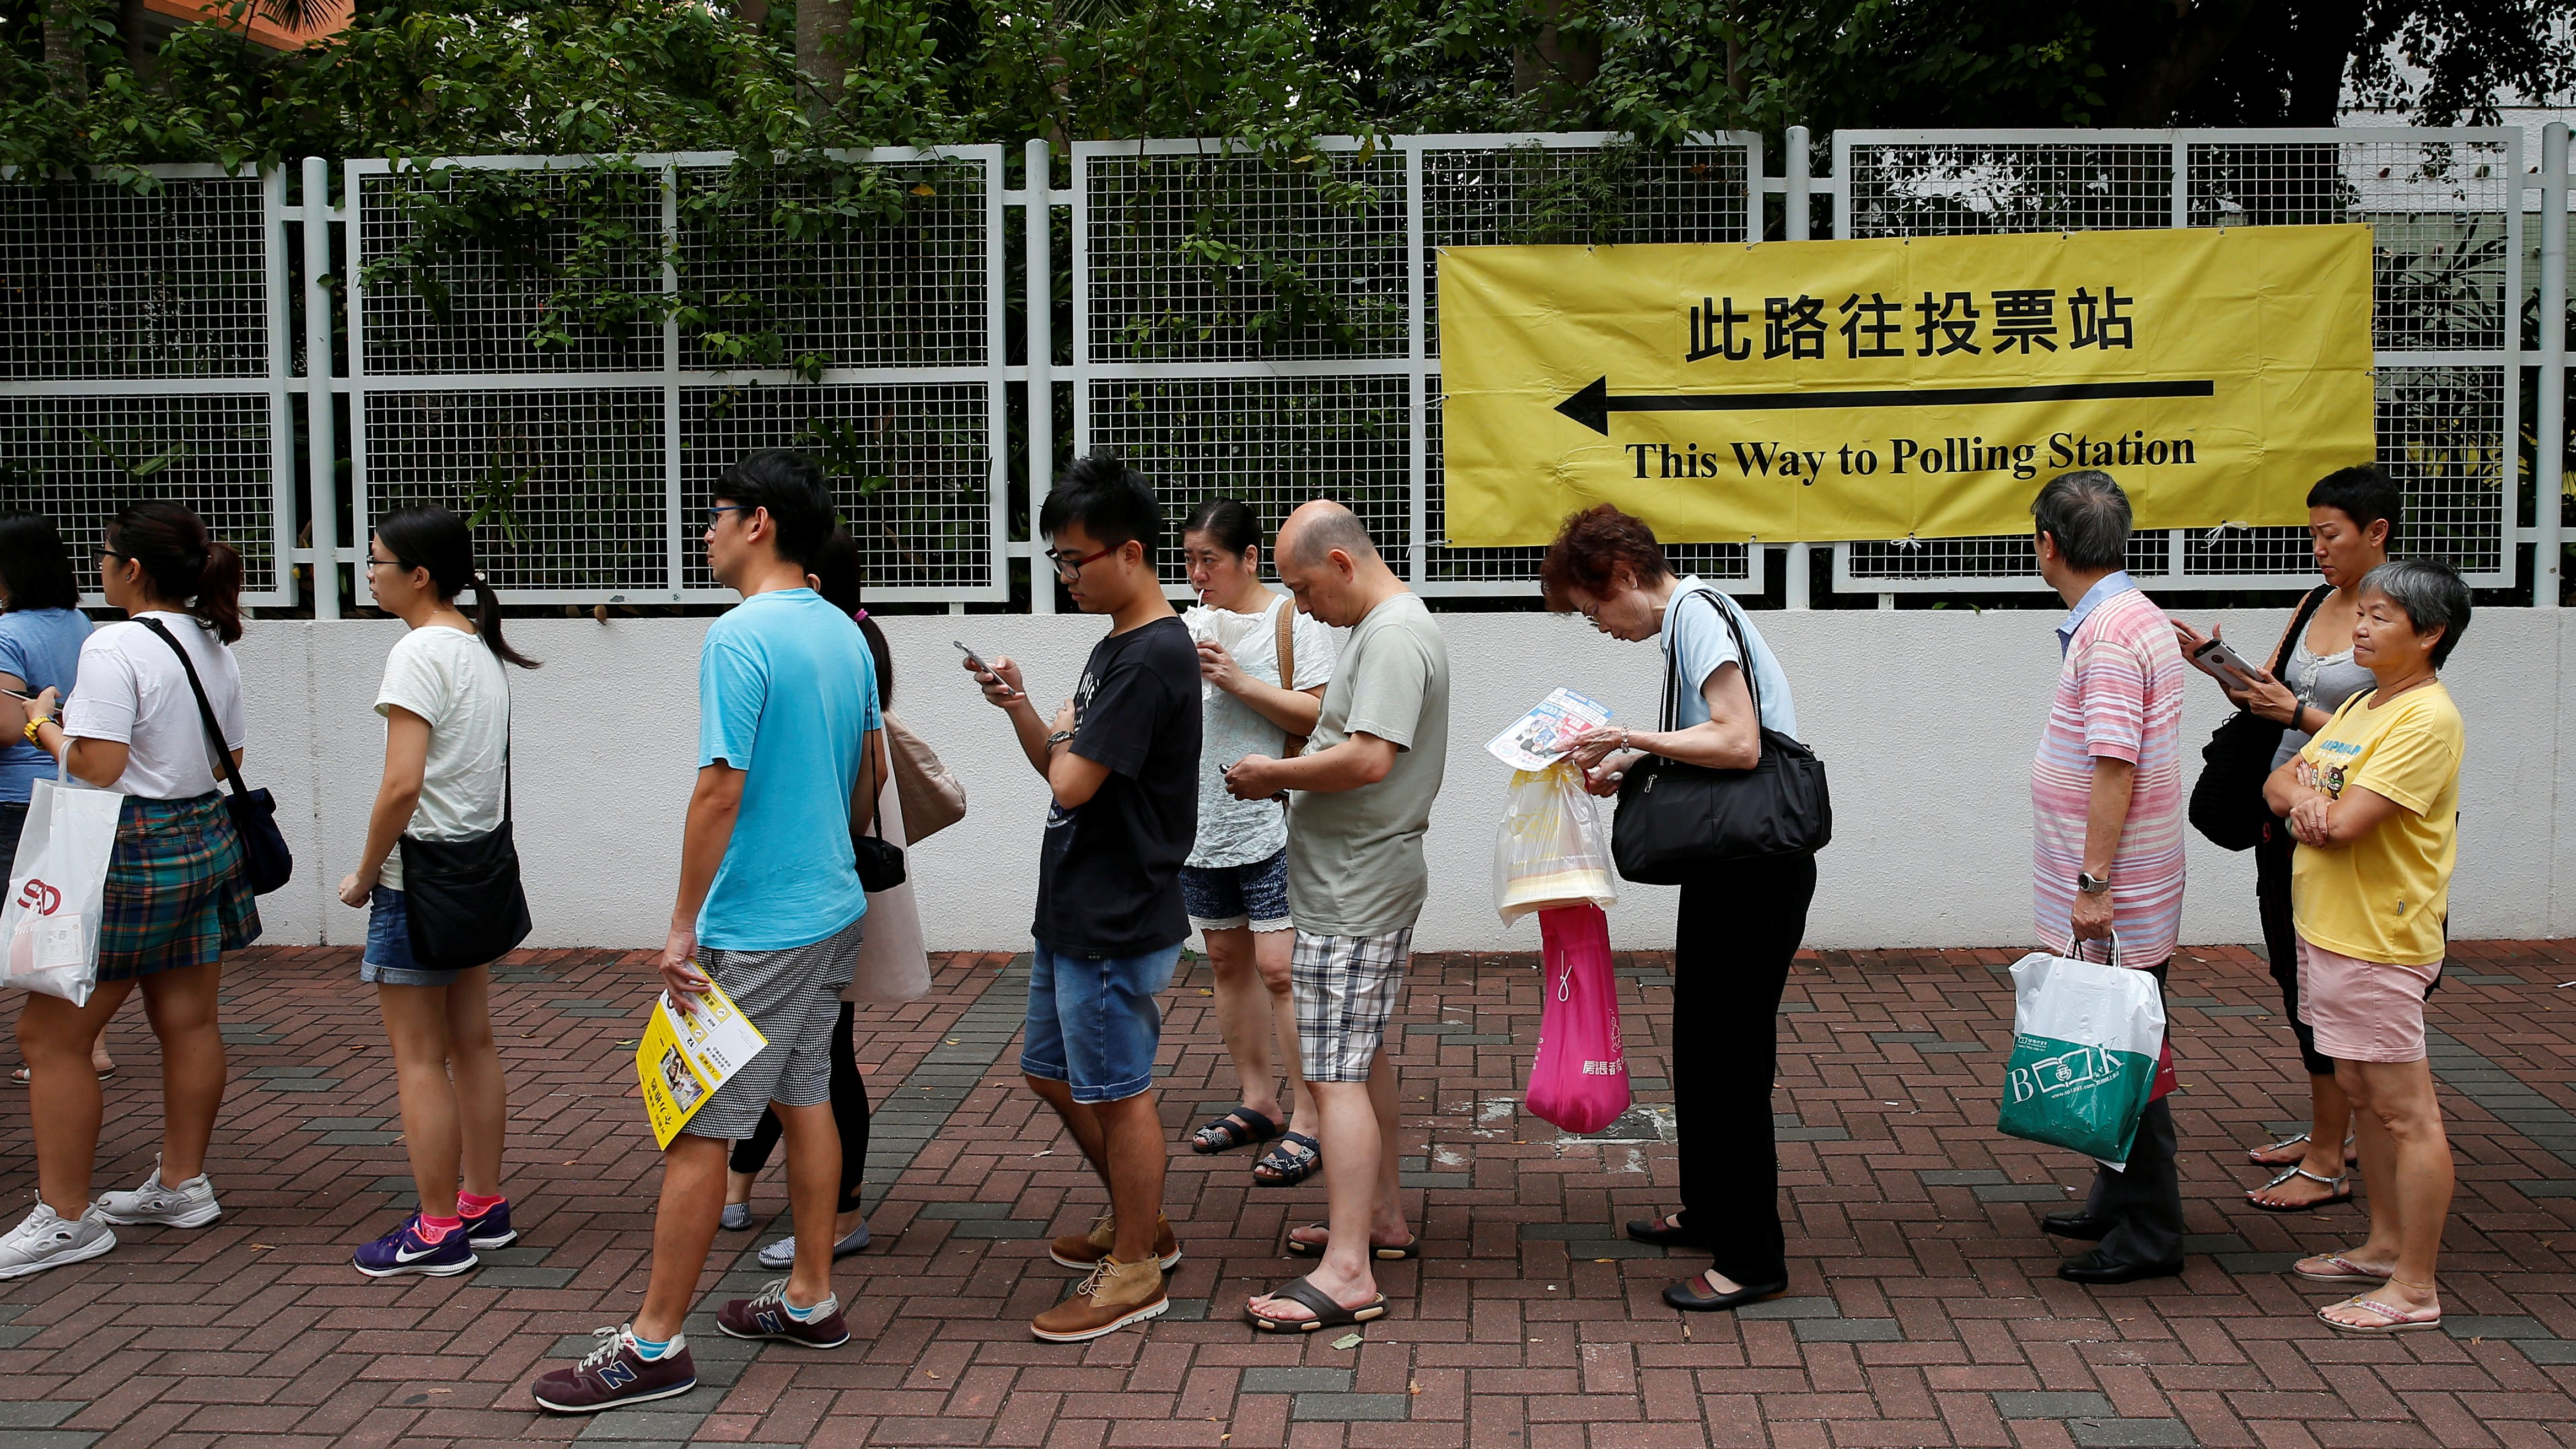 People queue as they wait to cast their votes for the Legislative Council election at a polling station in Hong Kong, China September 4, 2016. REUTERS/Tyrone Siu - RTX2O1DJ